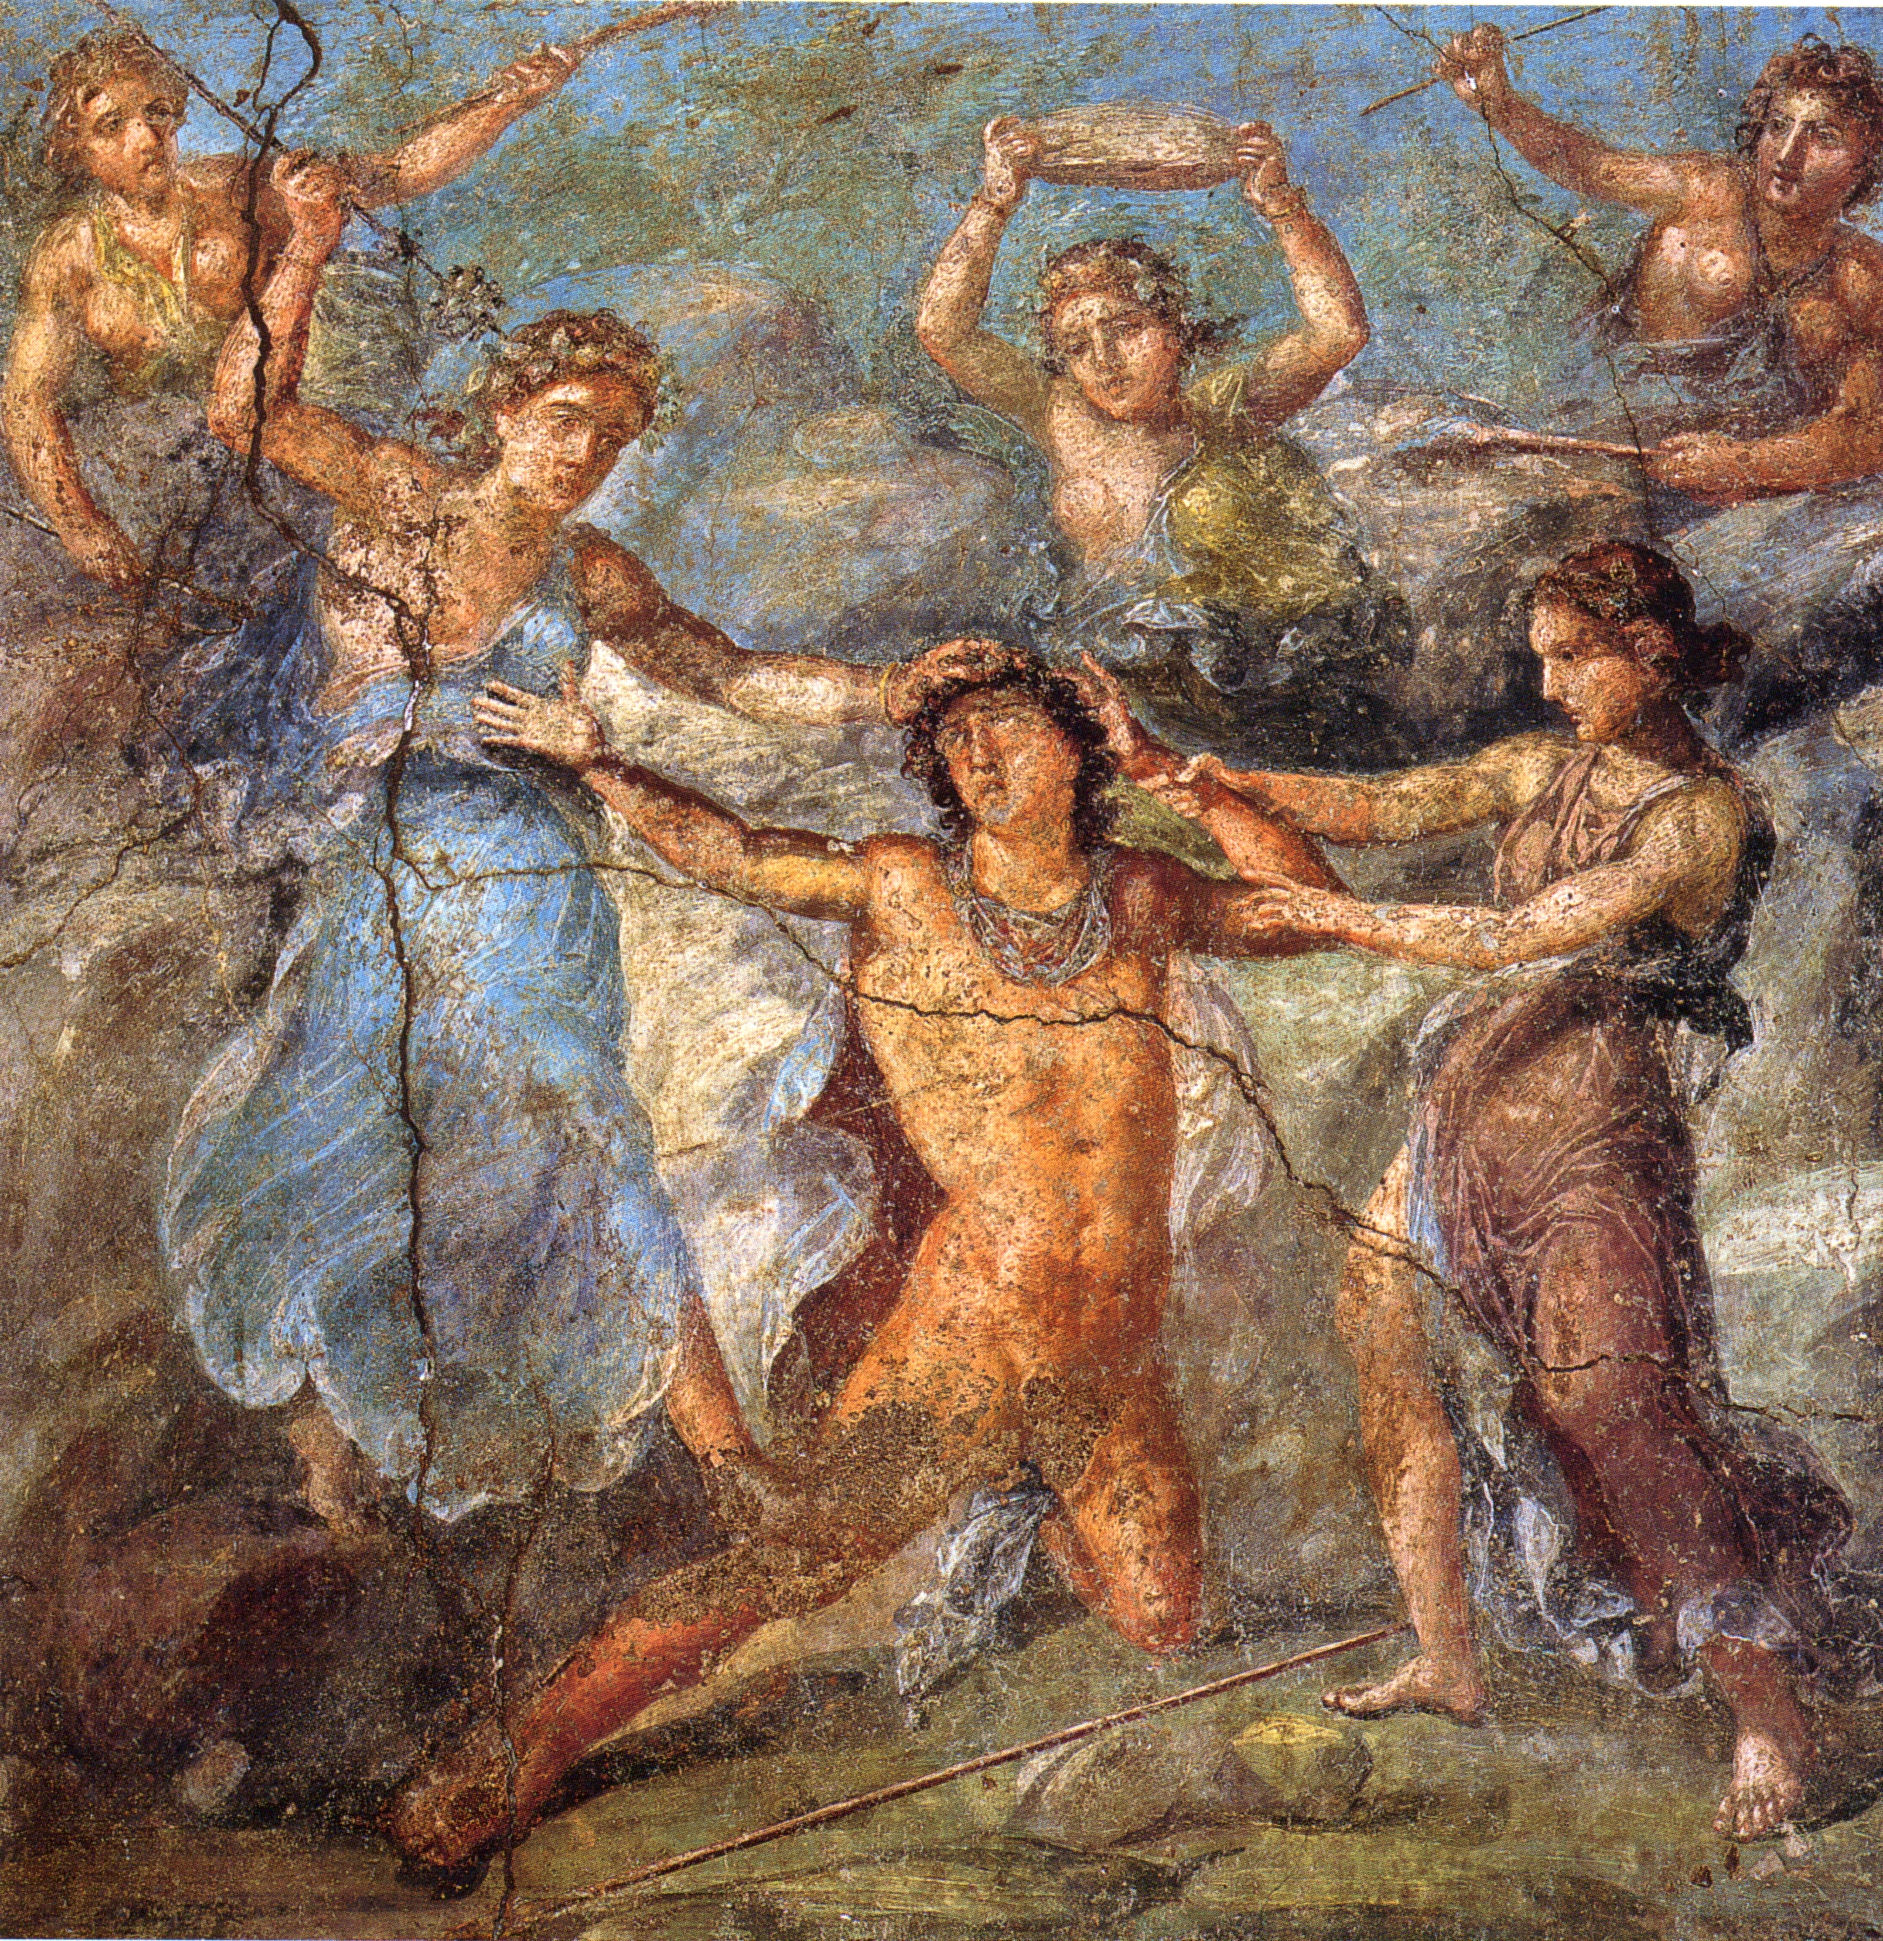 a comparison of the characters of pentheus and dionysus in bacchae A cast of characters followers of dionysus, the bacchae are ordinary women oppressed by ancient greece he wisely urges pentheus to accept dionysus.